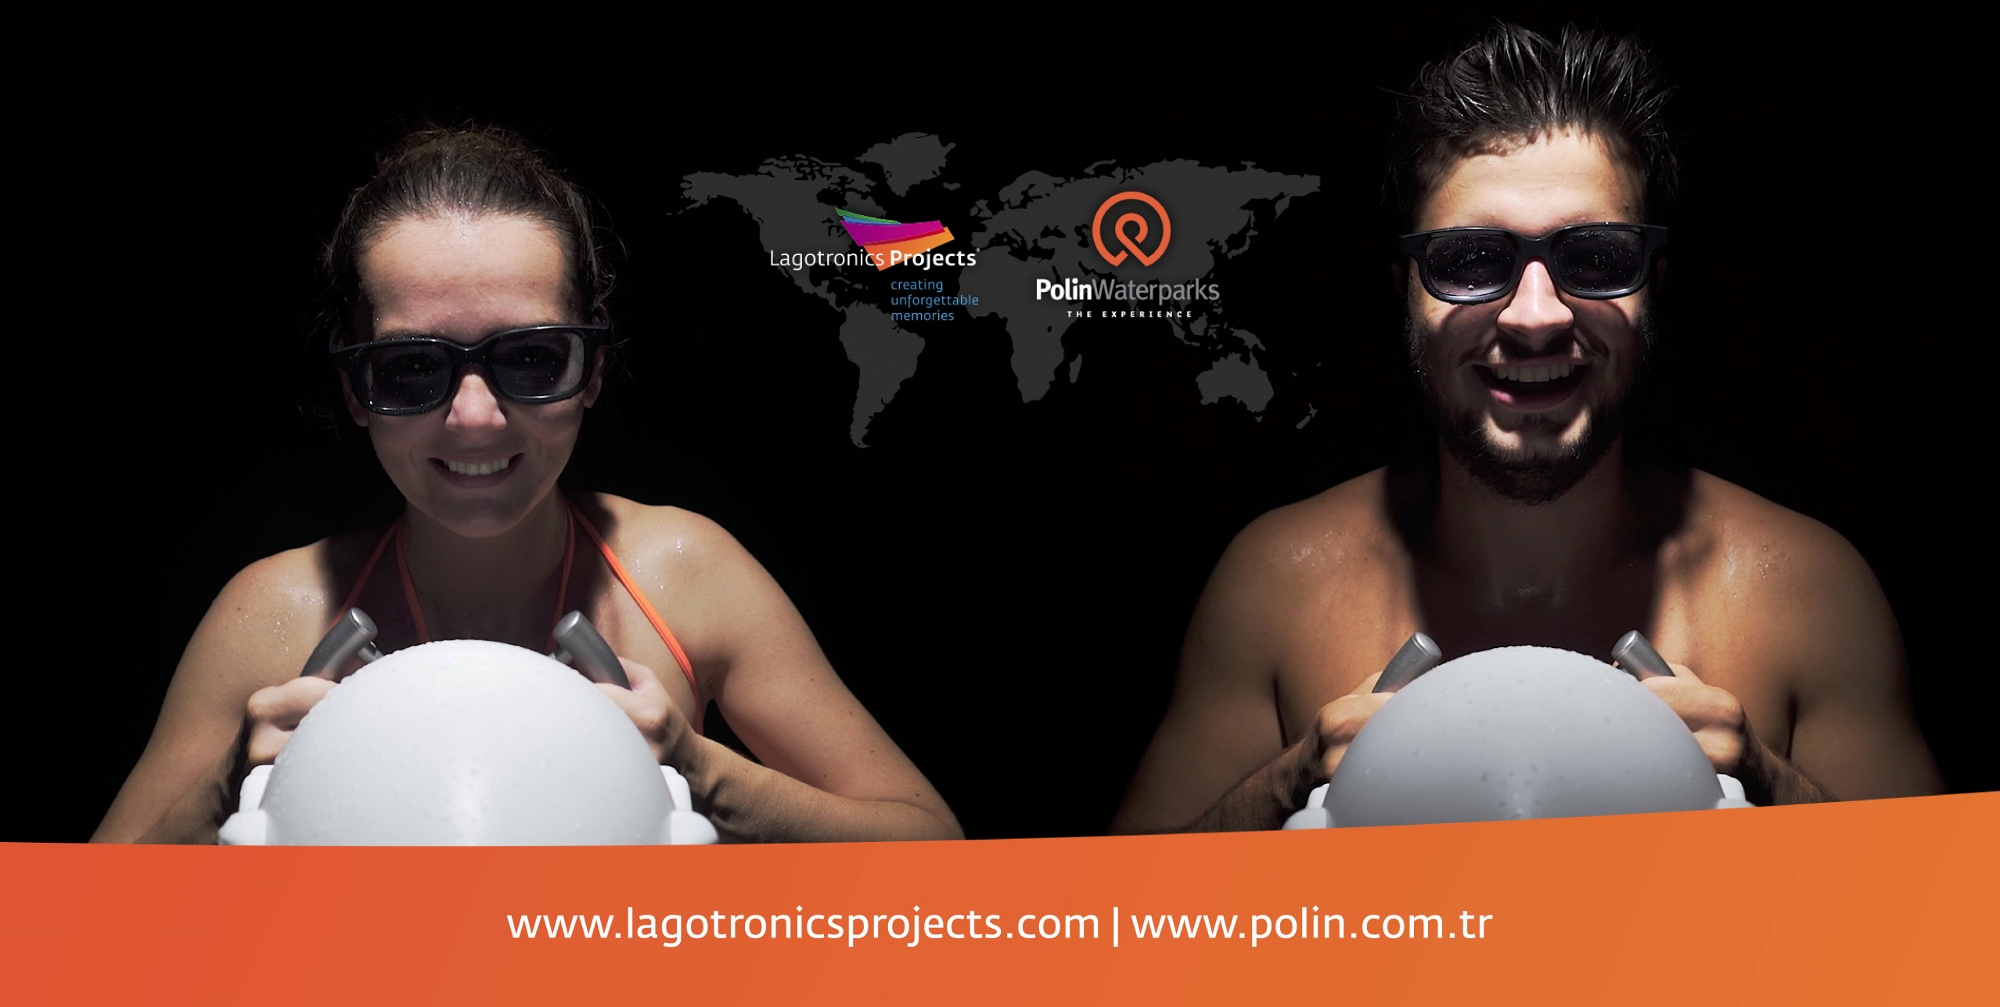 lagotronics partners polin launch first collaboration at IAAPA